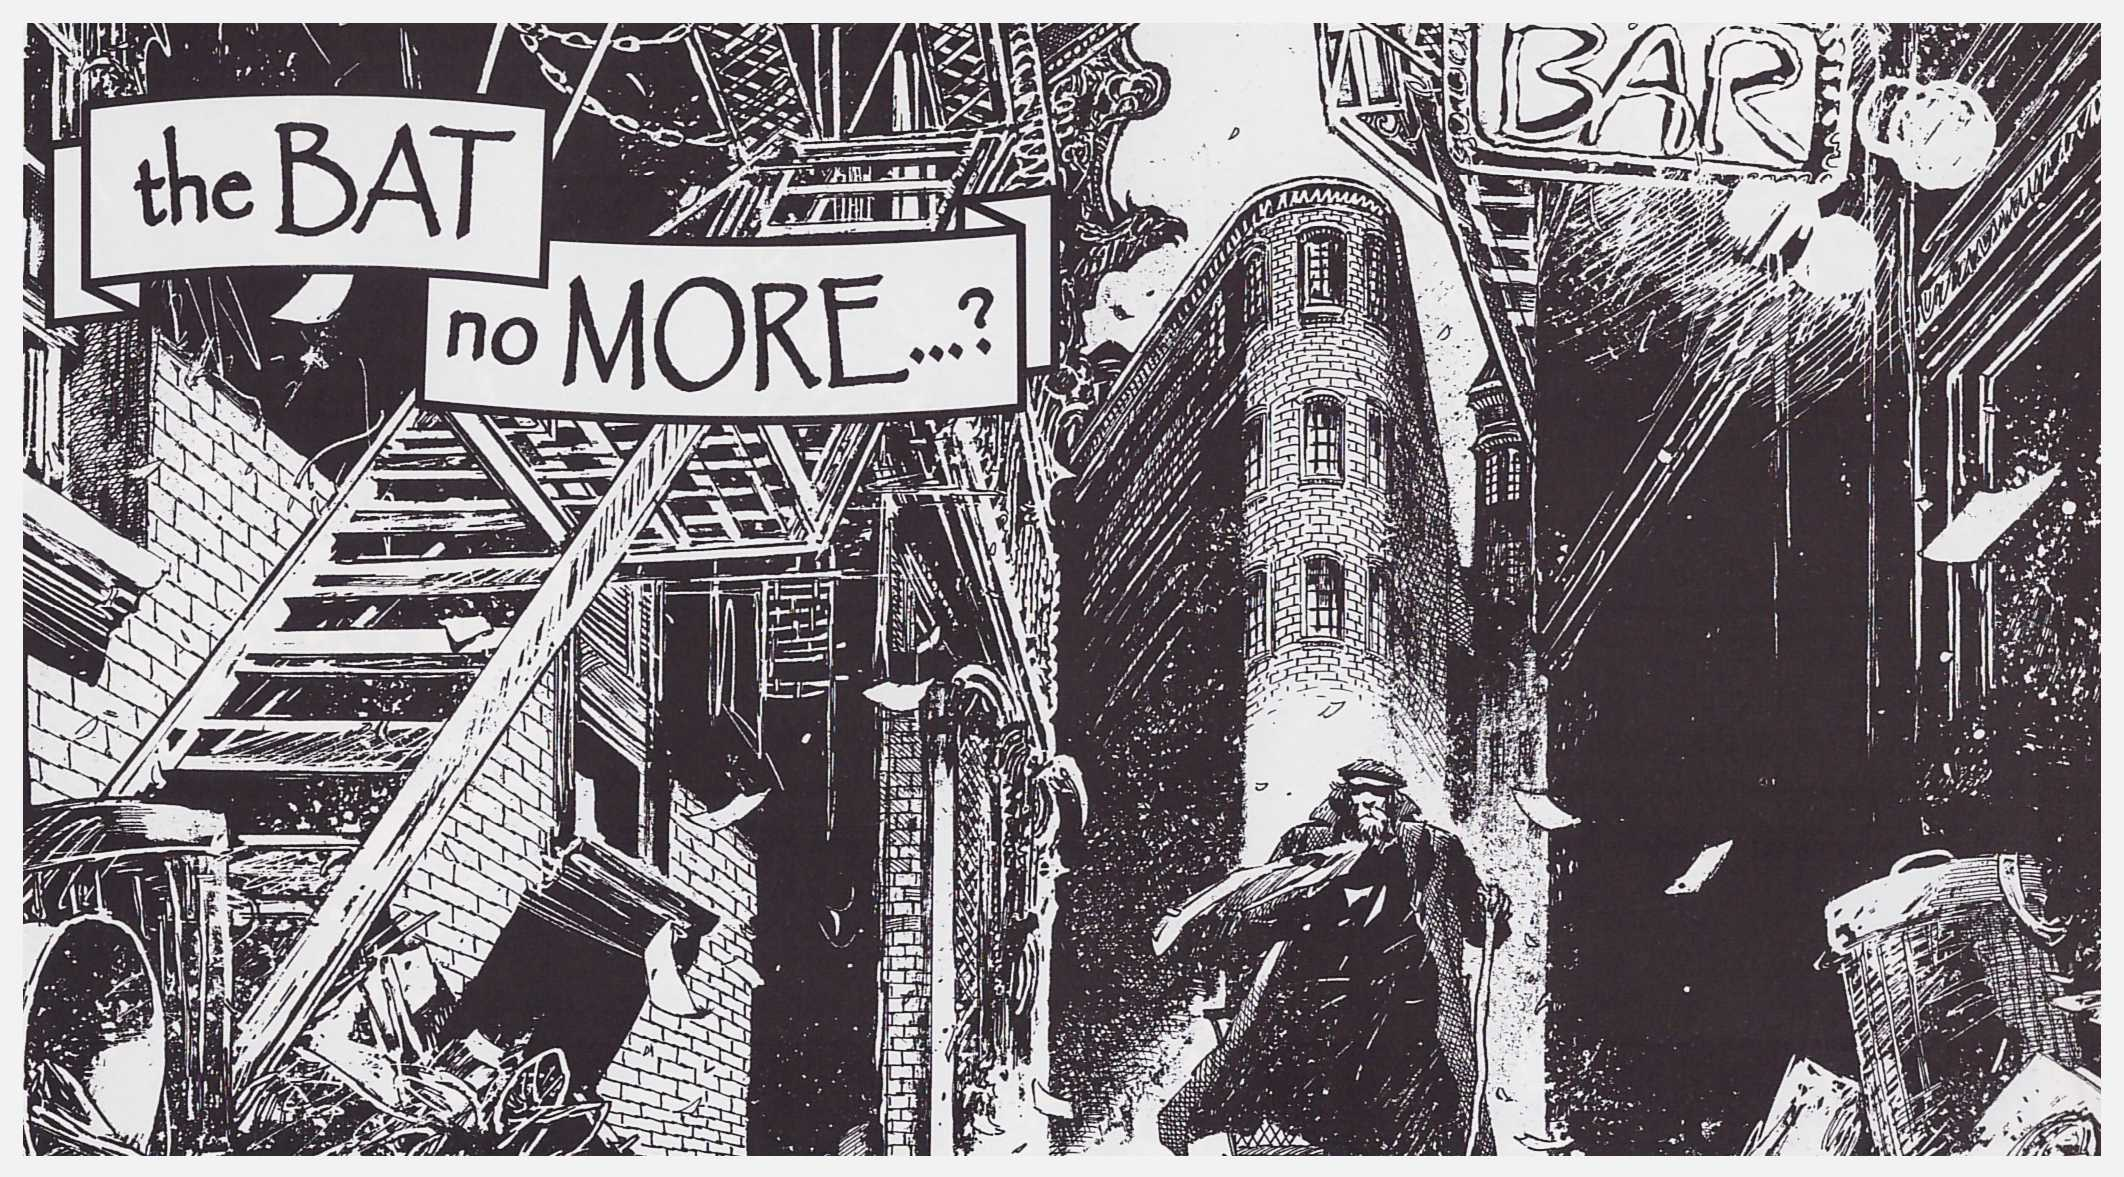 Batman Black and White Volume 2 review